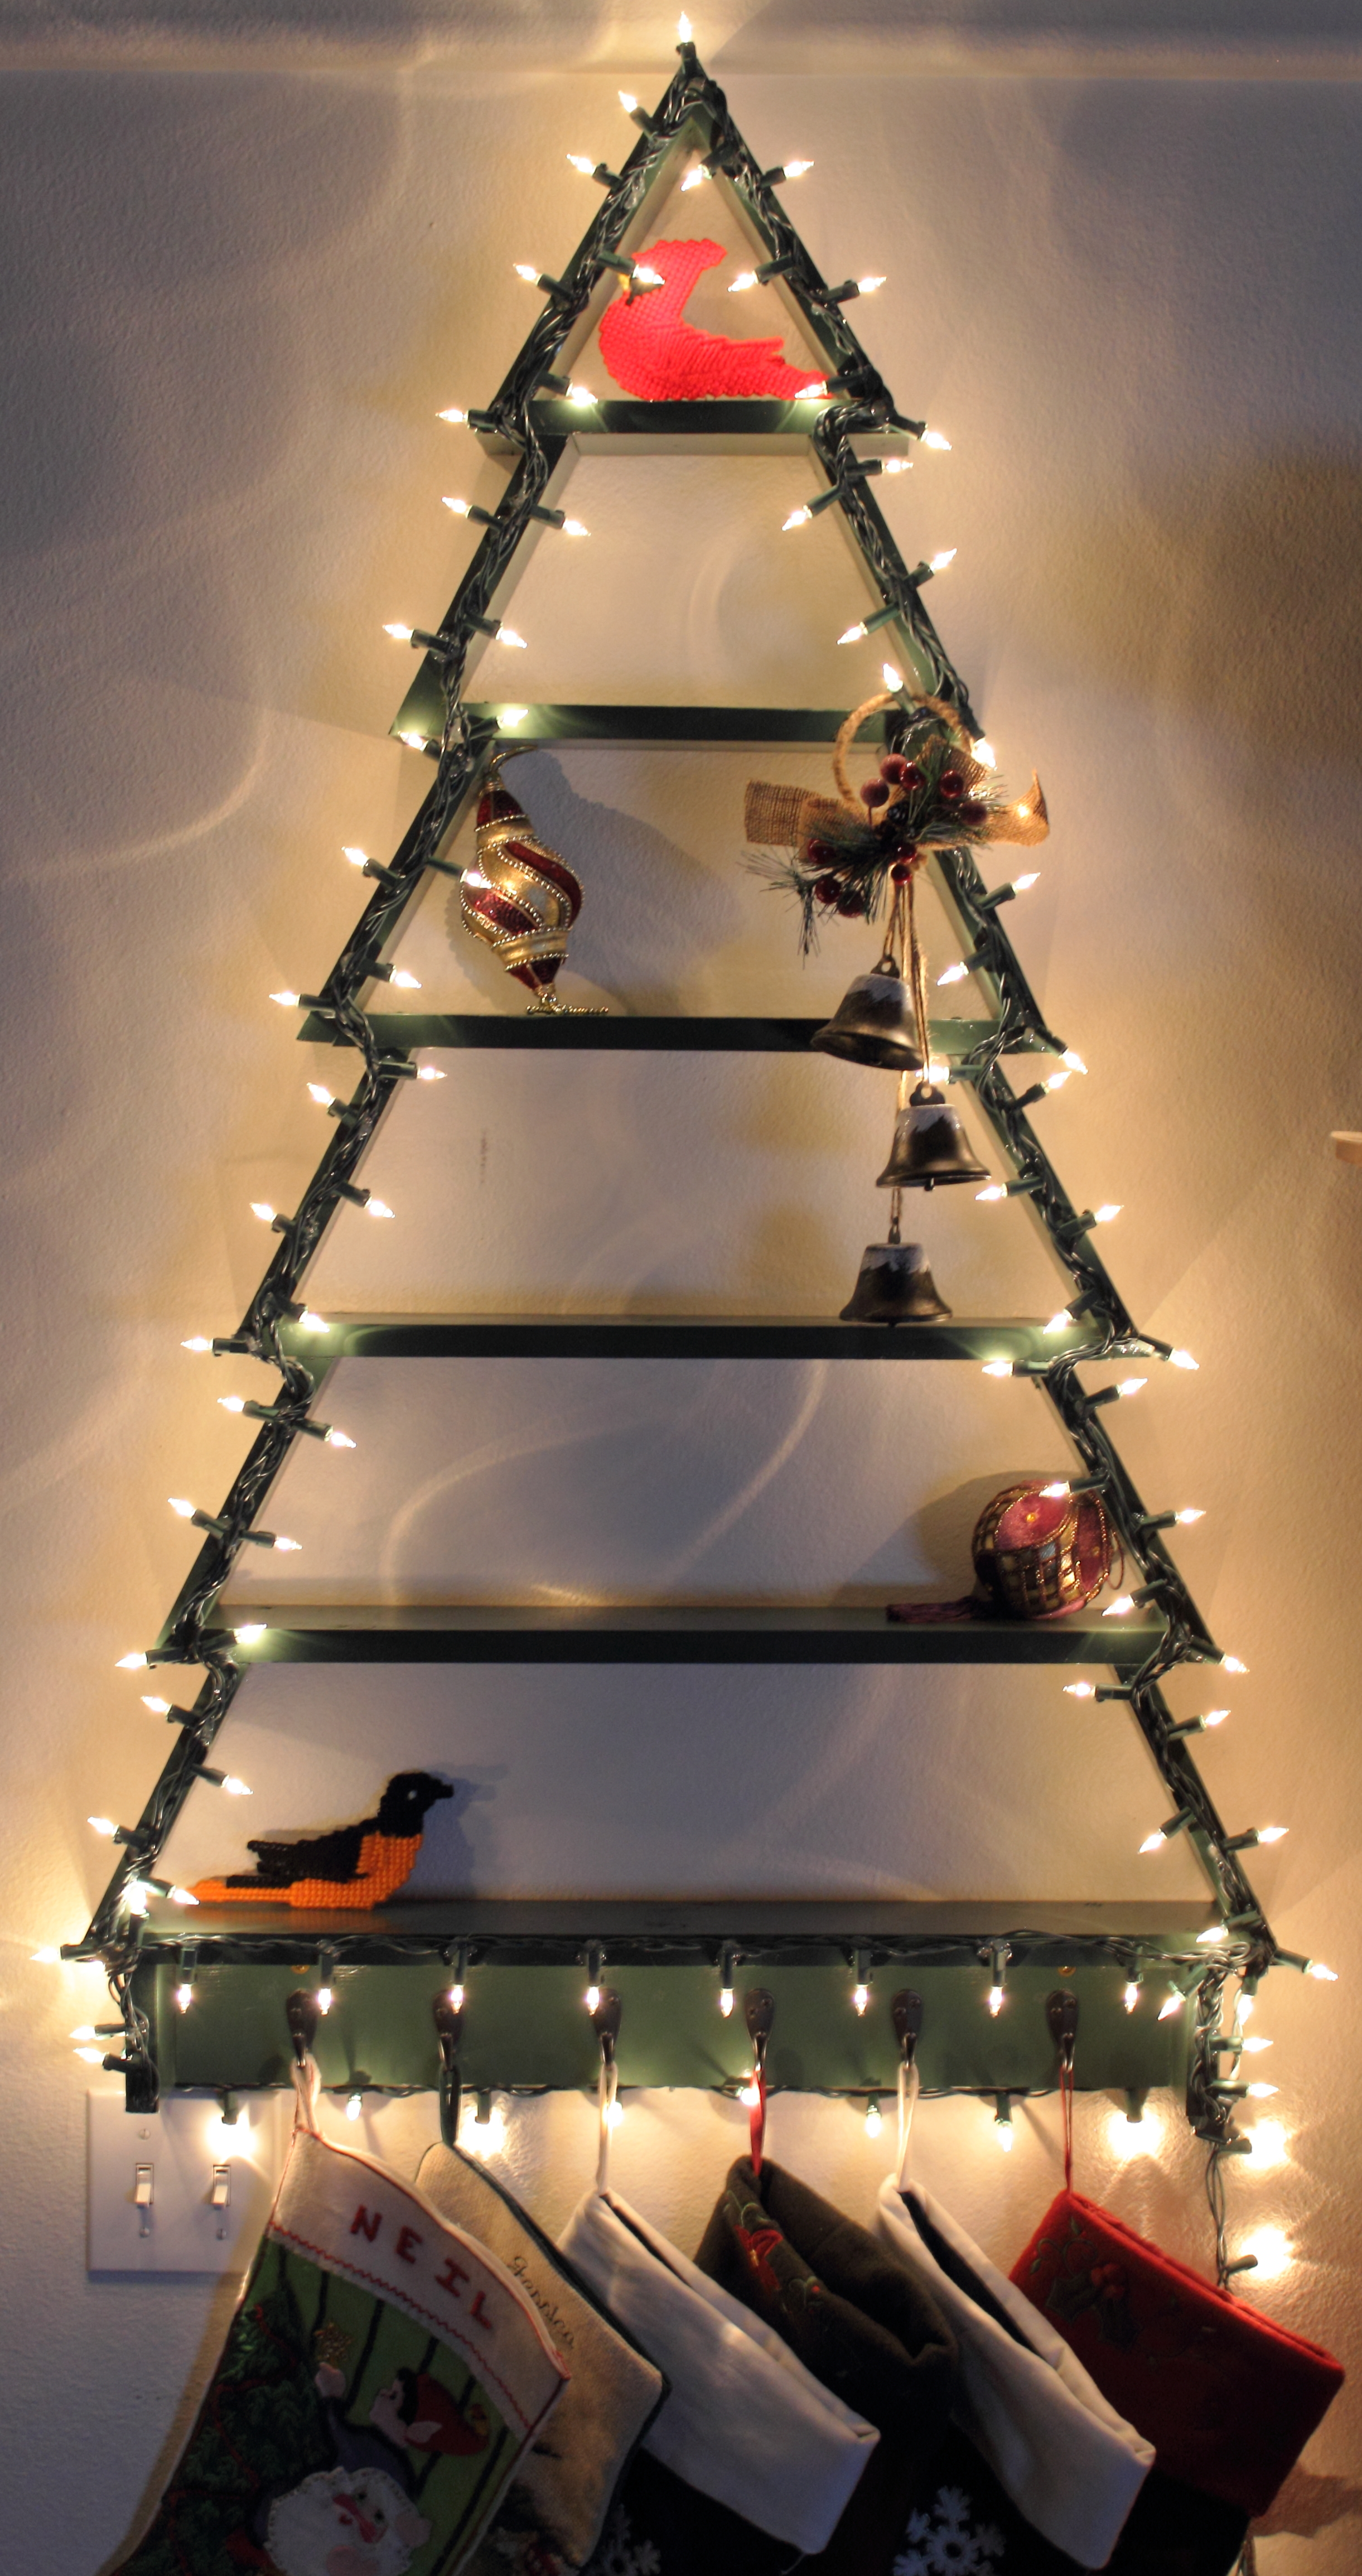 Christmas Tree Shelf With Lights Ana White